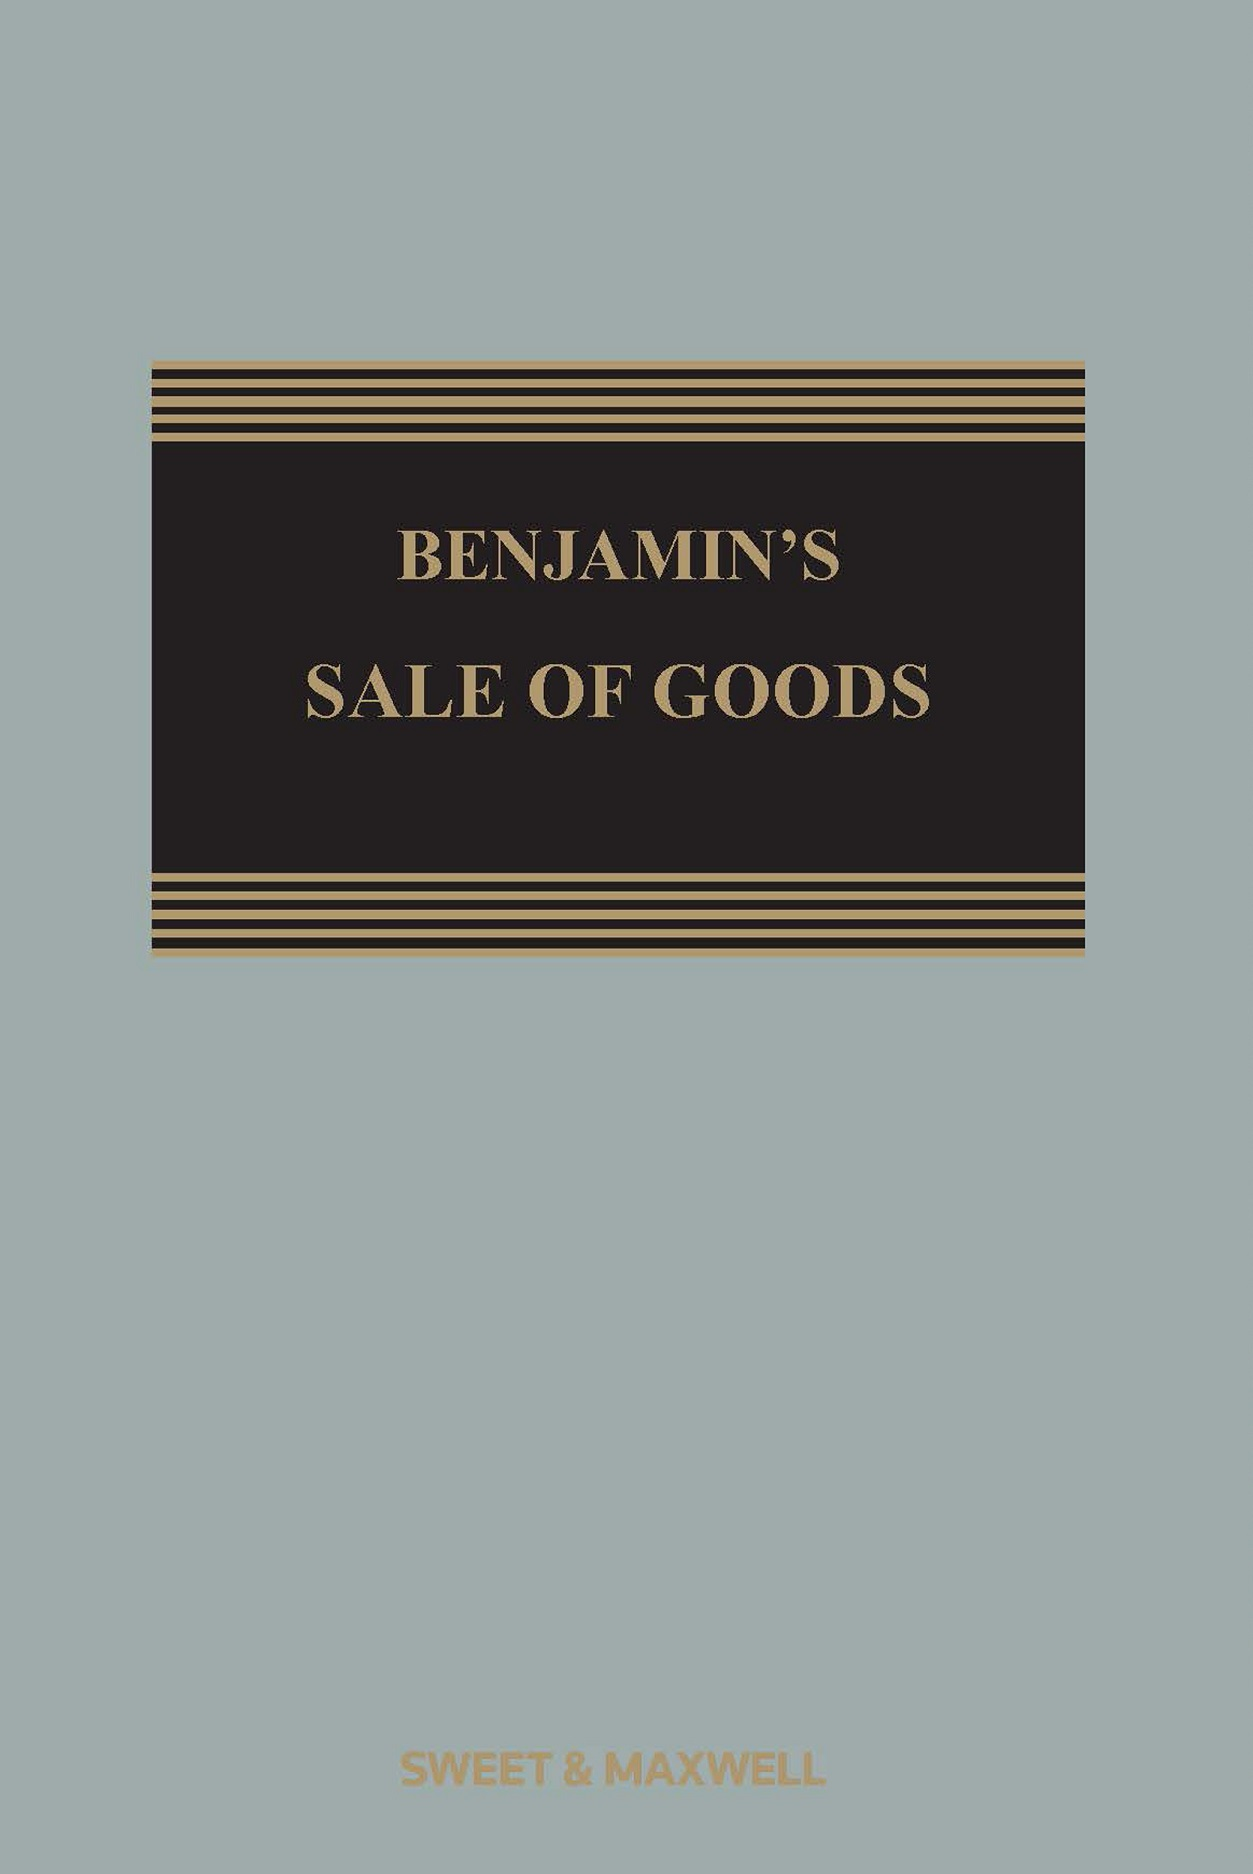 Benjamins sale of goods 10th edition thomson reuters australia benjamins sale of goods 10th edition fandeluxe Images